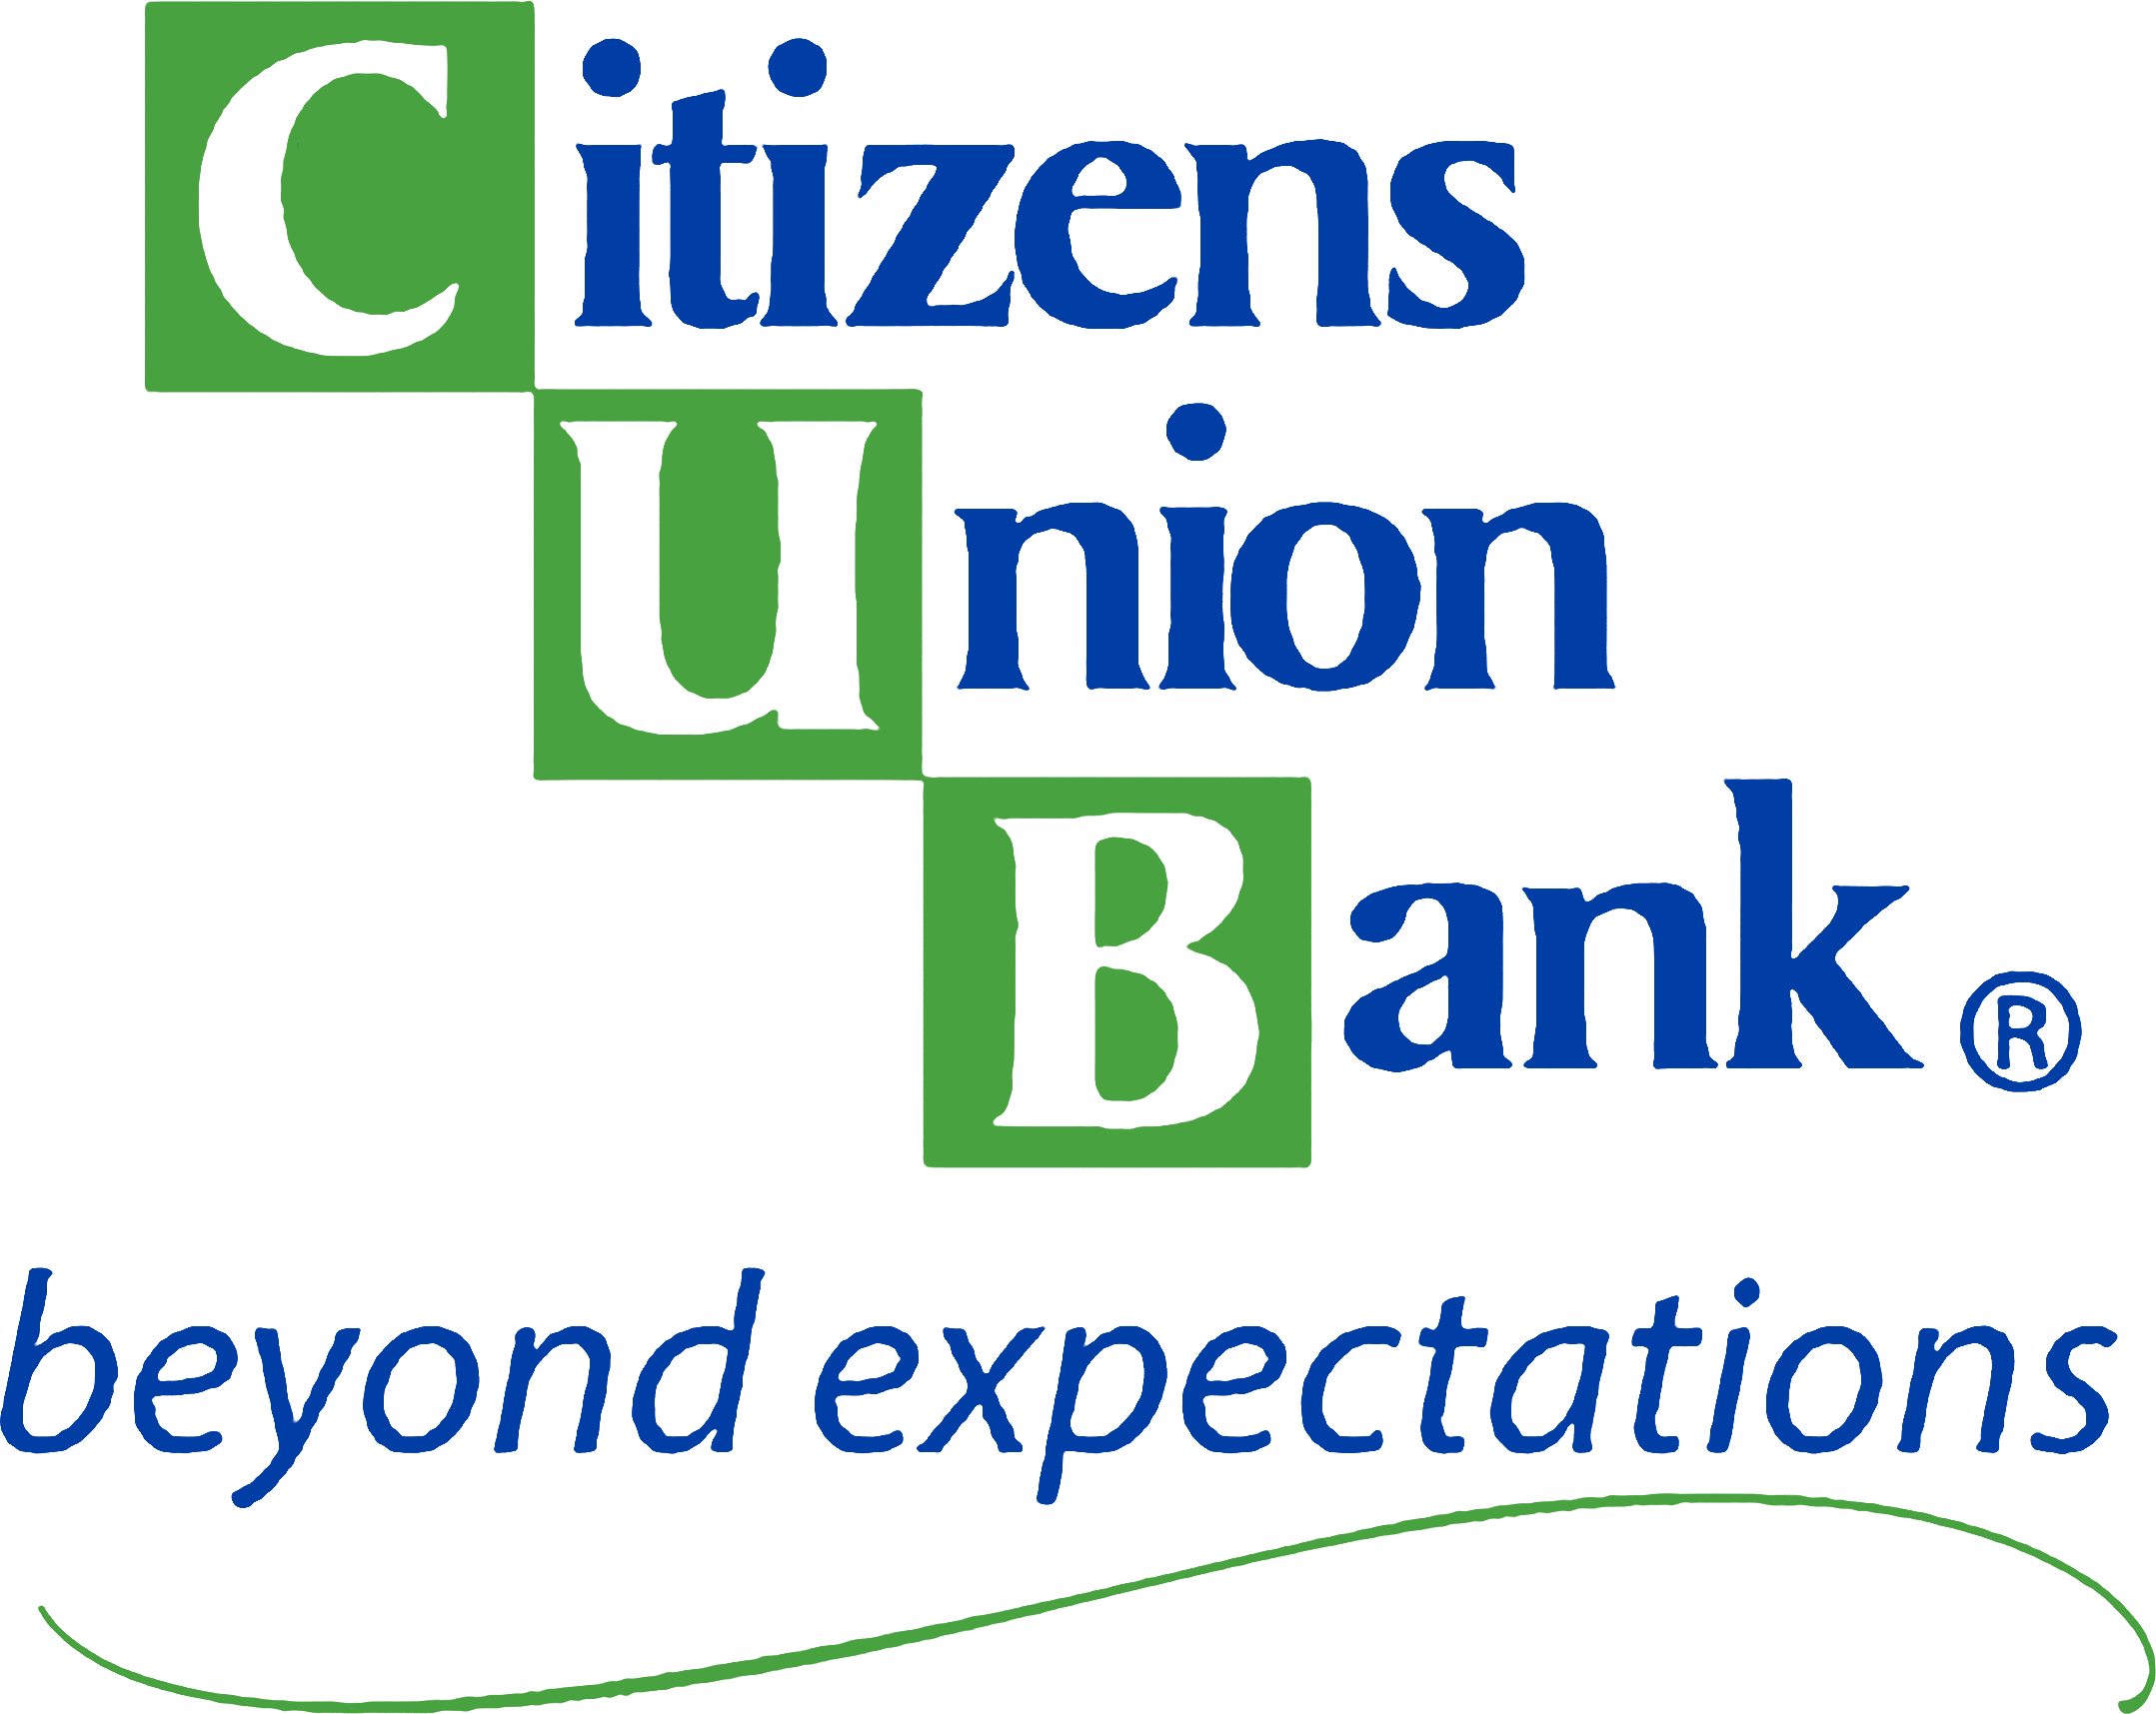 Citizens Union Bank logo